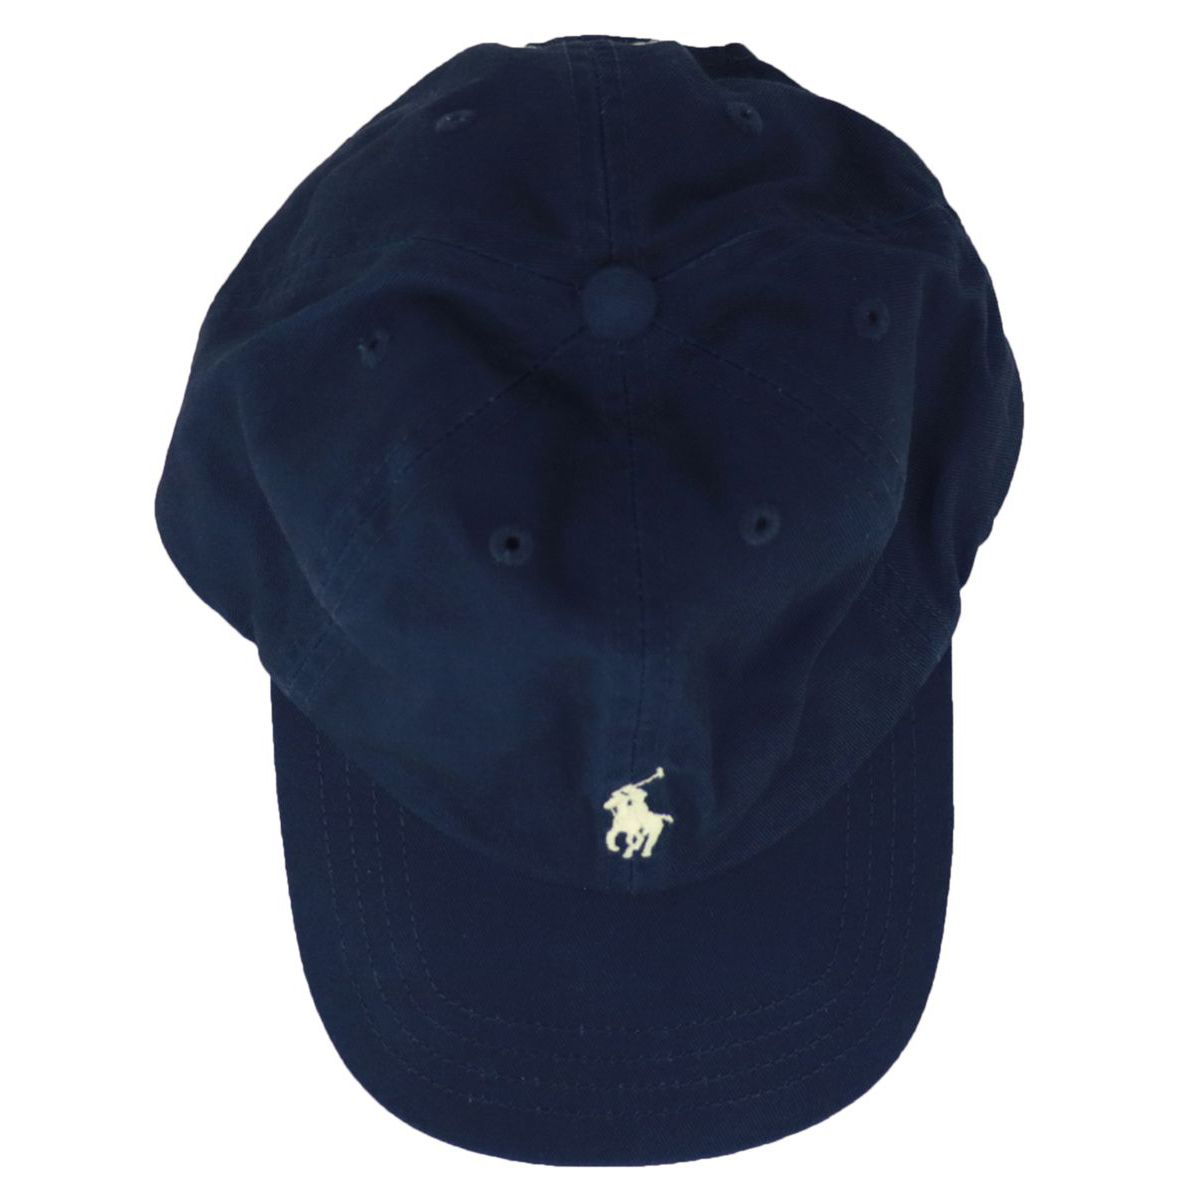 Cotton cap with visor and logo embroidery Navy Polo Ralph Lauren